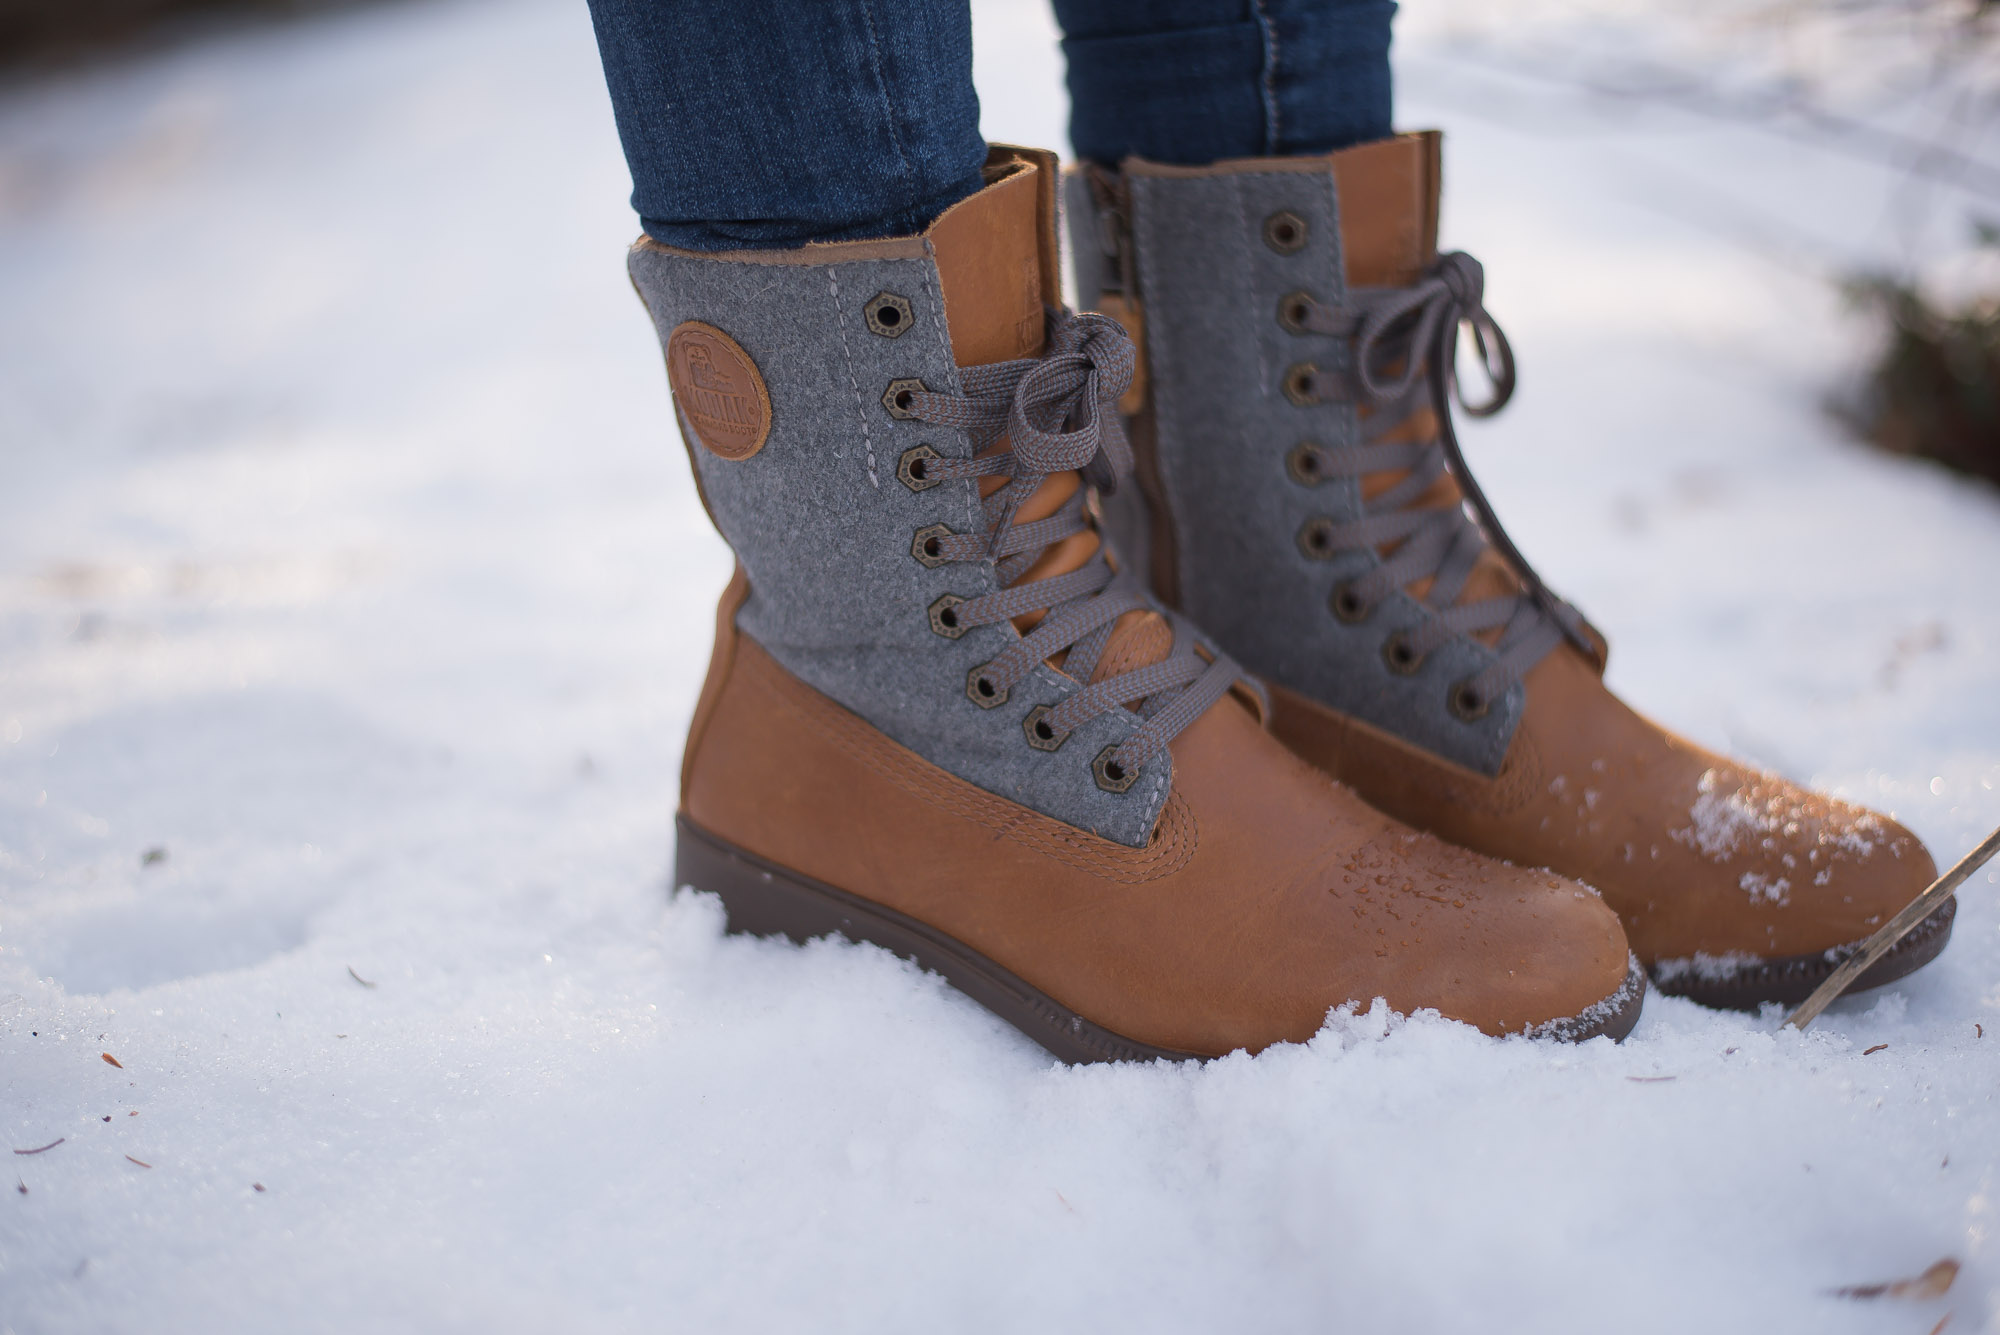 How to Style a pair of hiking boots for every day style. This mom of two shows her go to look wearing her hiking boots.